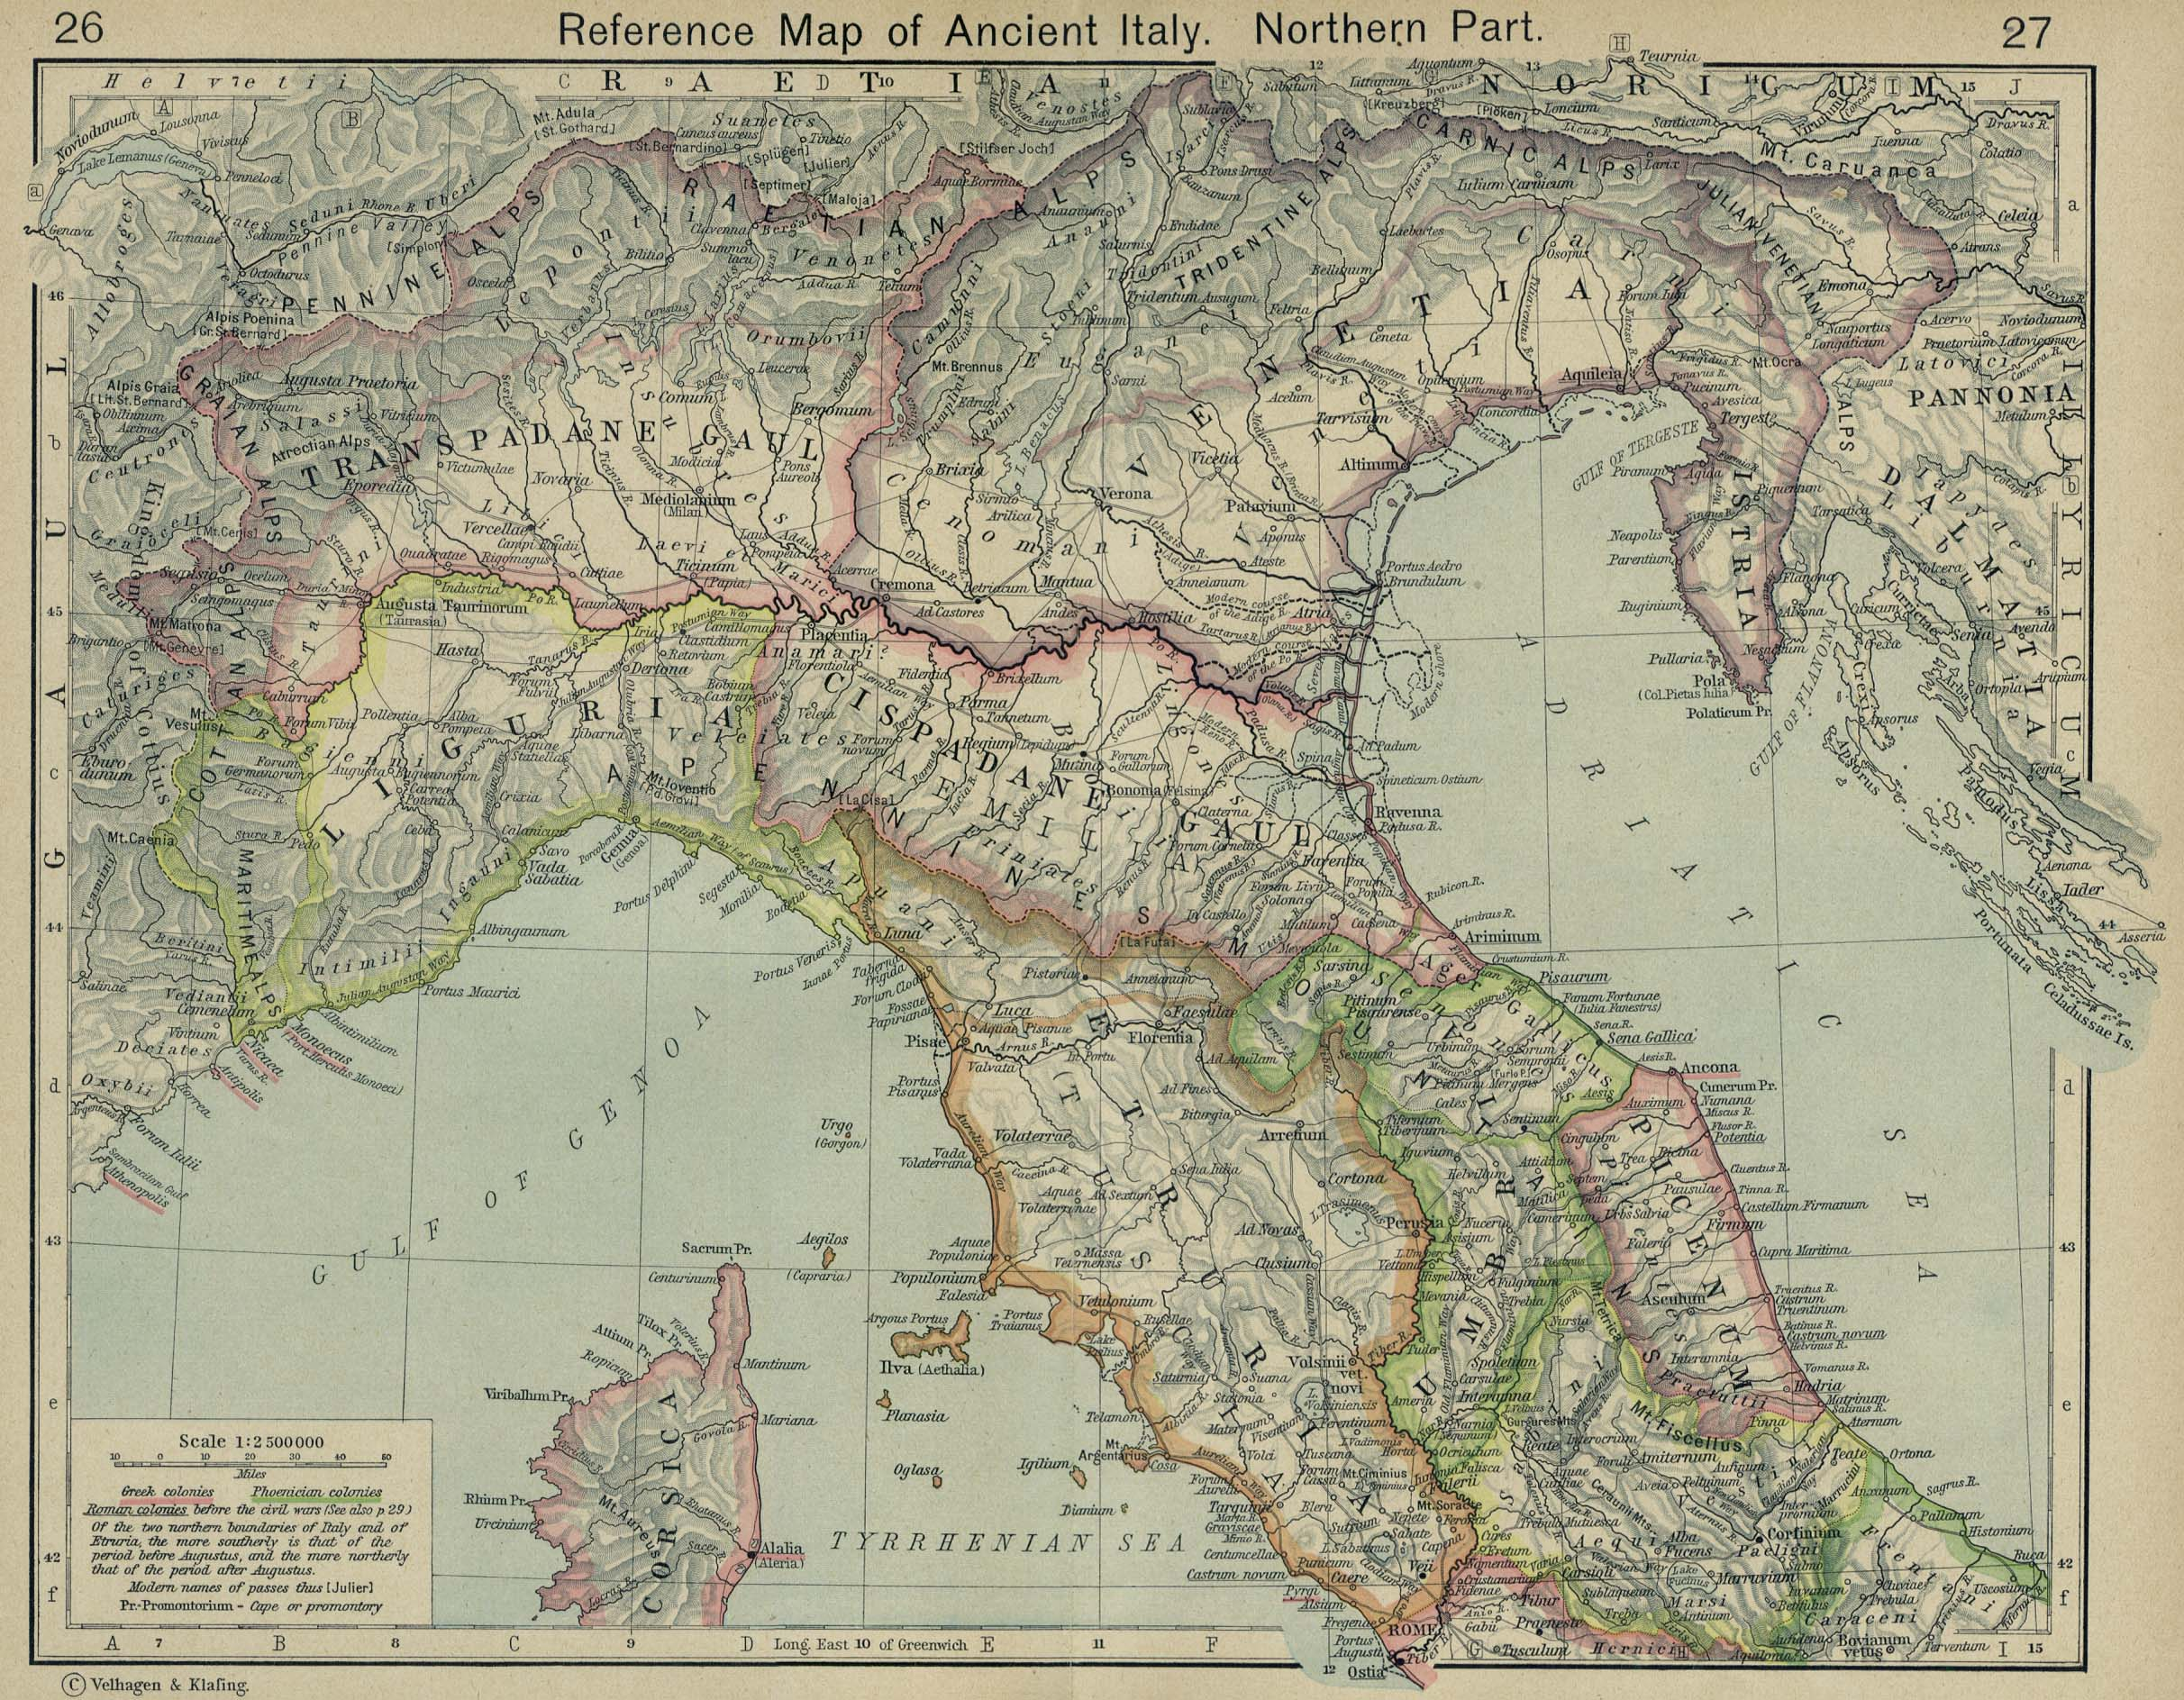 Map of Northern Italy403 BC - AD 180